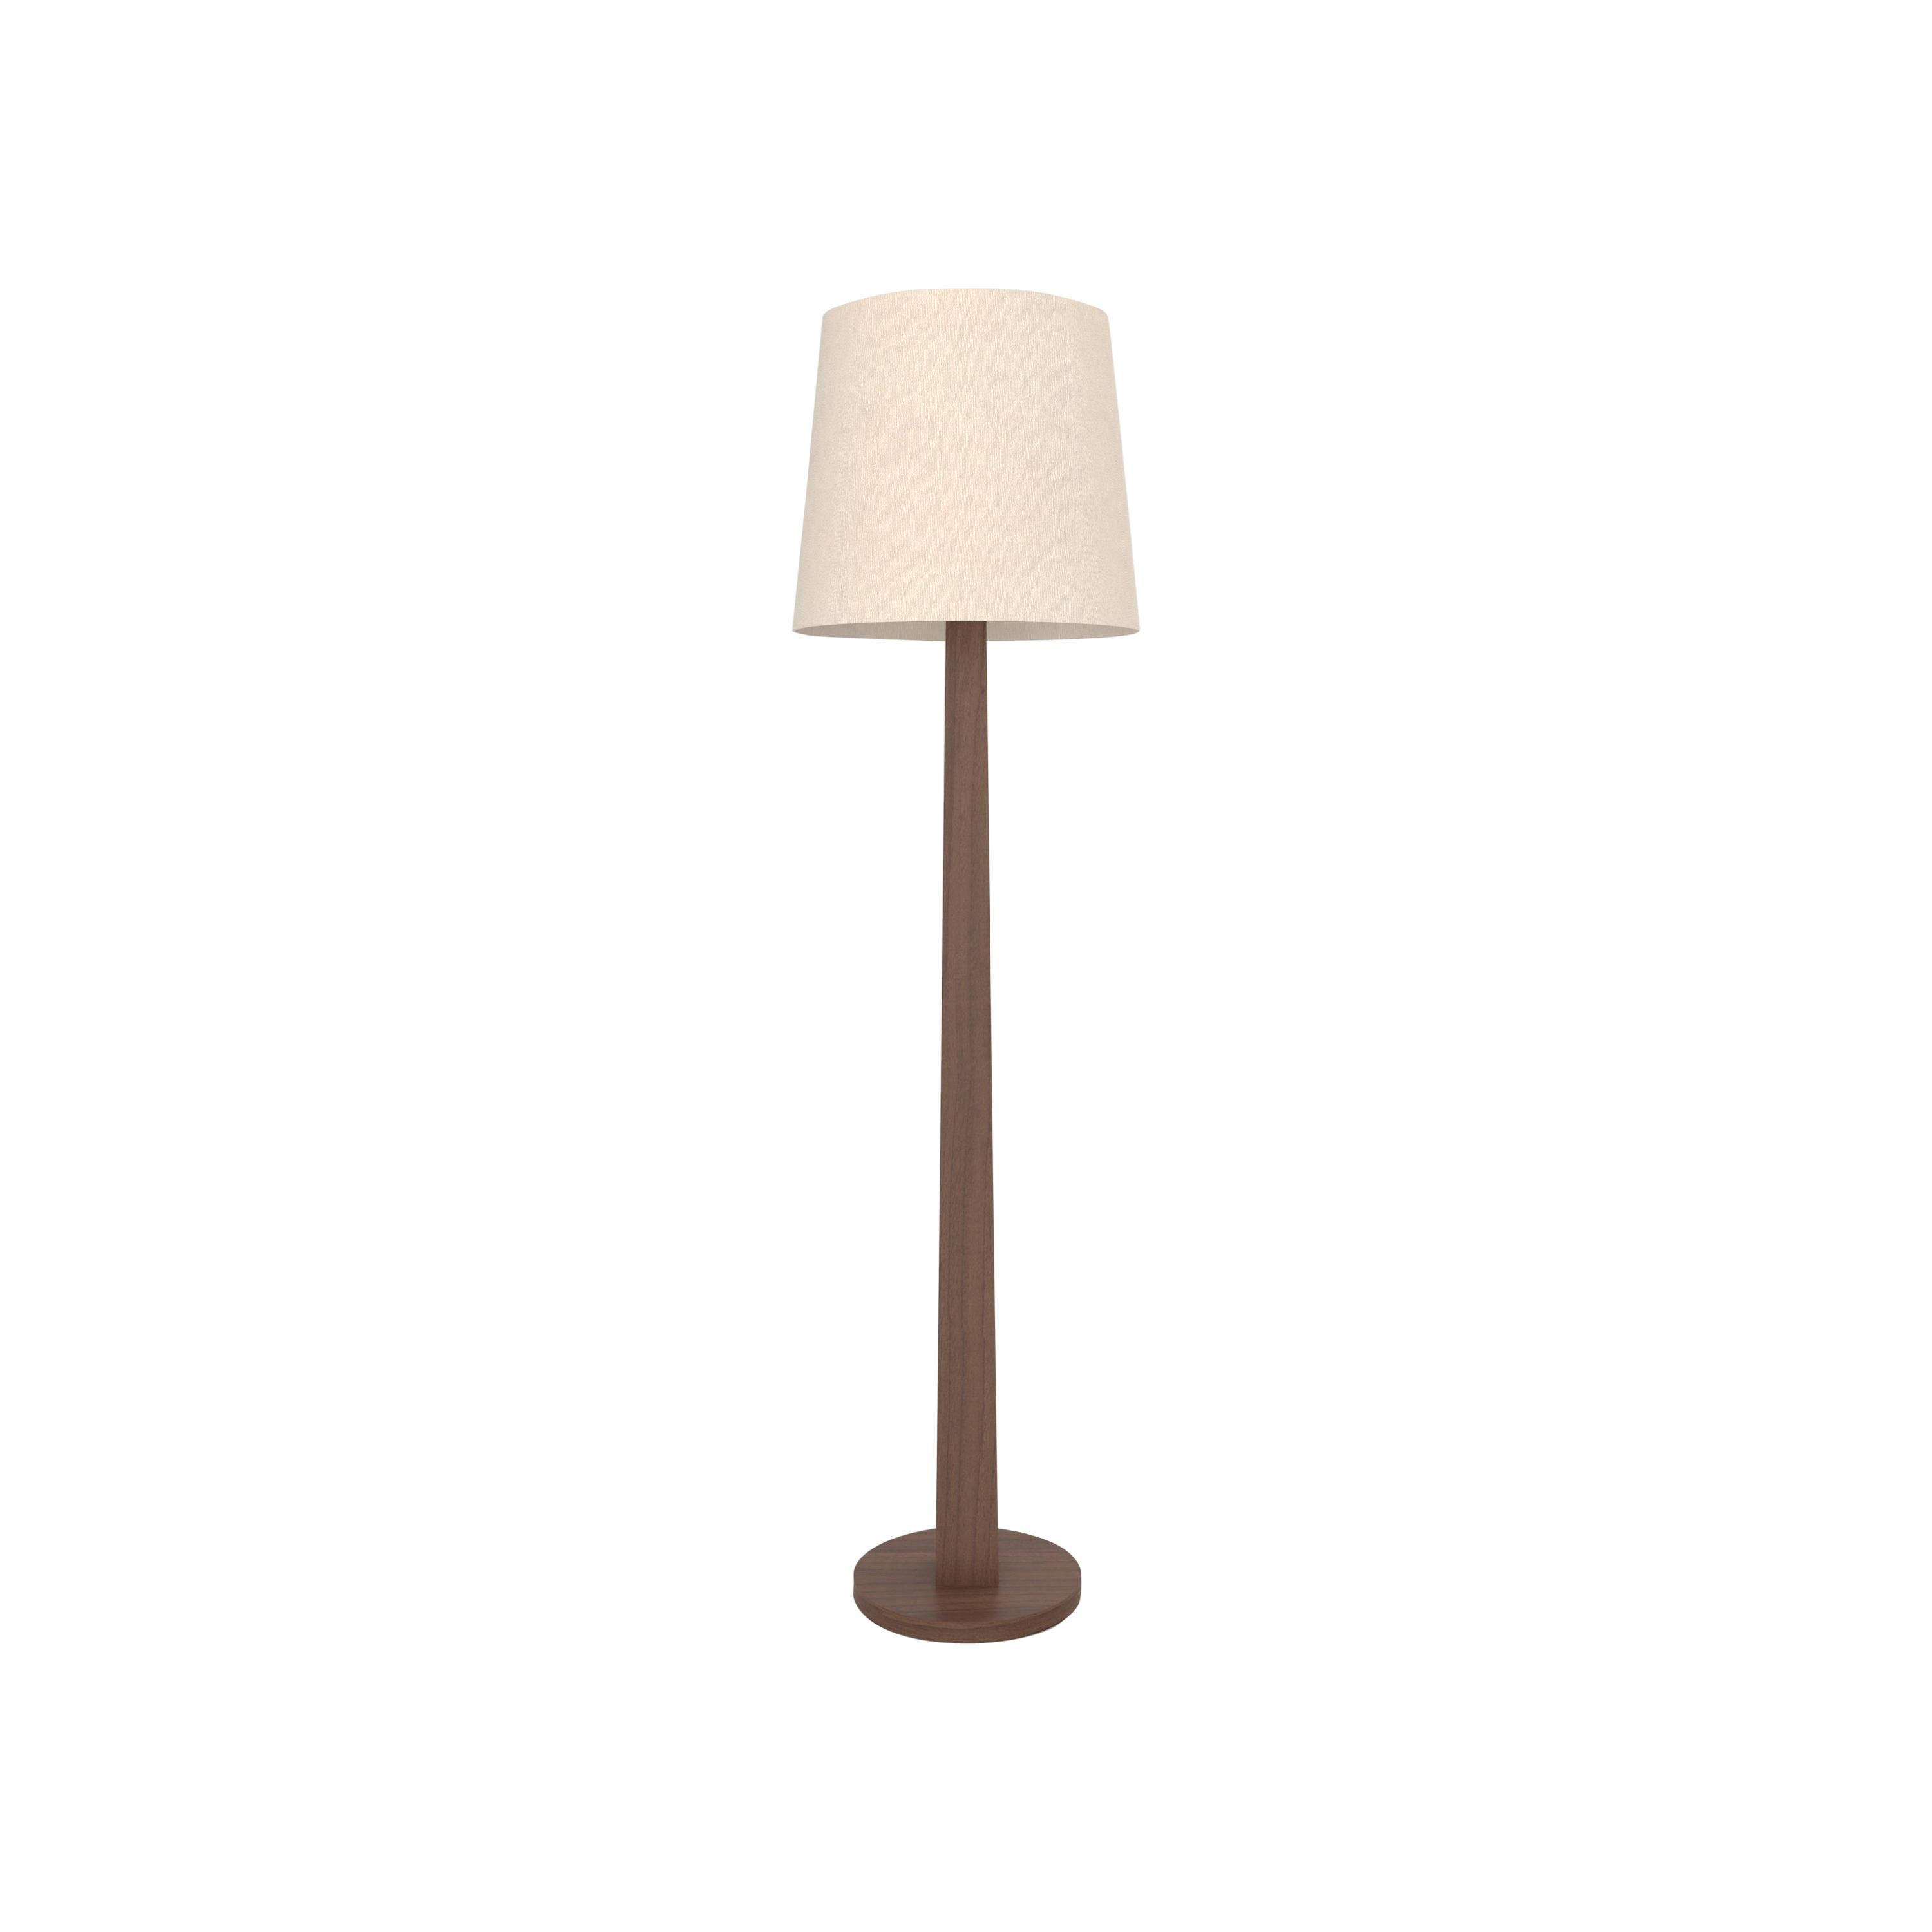 Contemporary 002 Floor Lamp in Walnut by Orphan Work